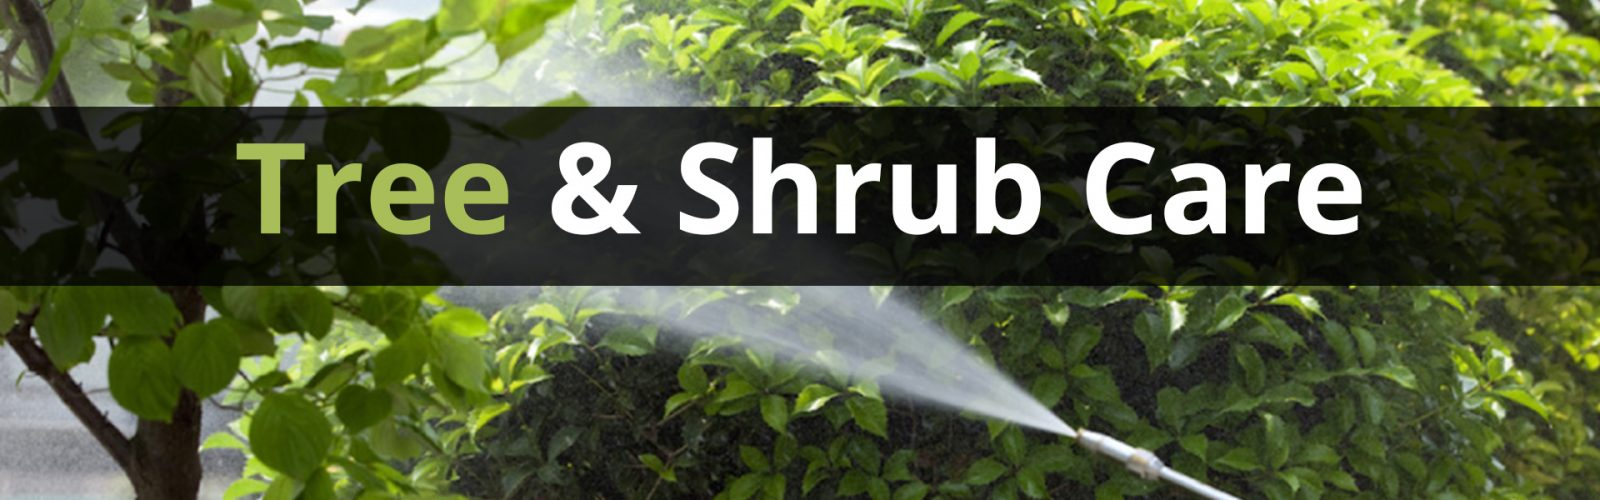 trett and shrub care